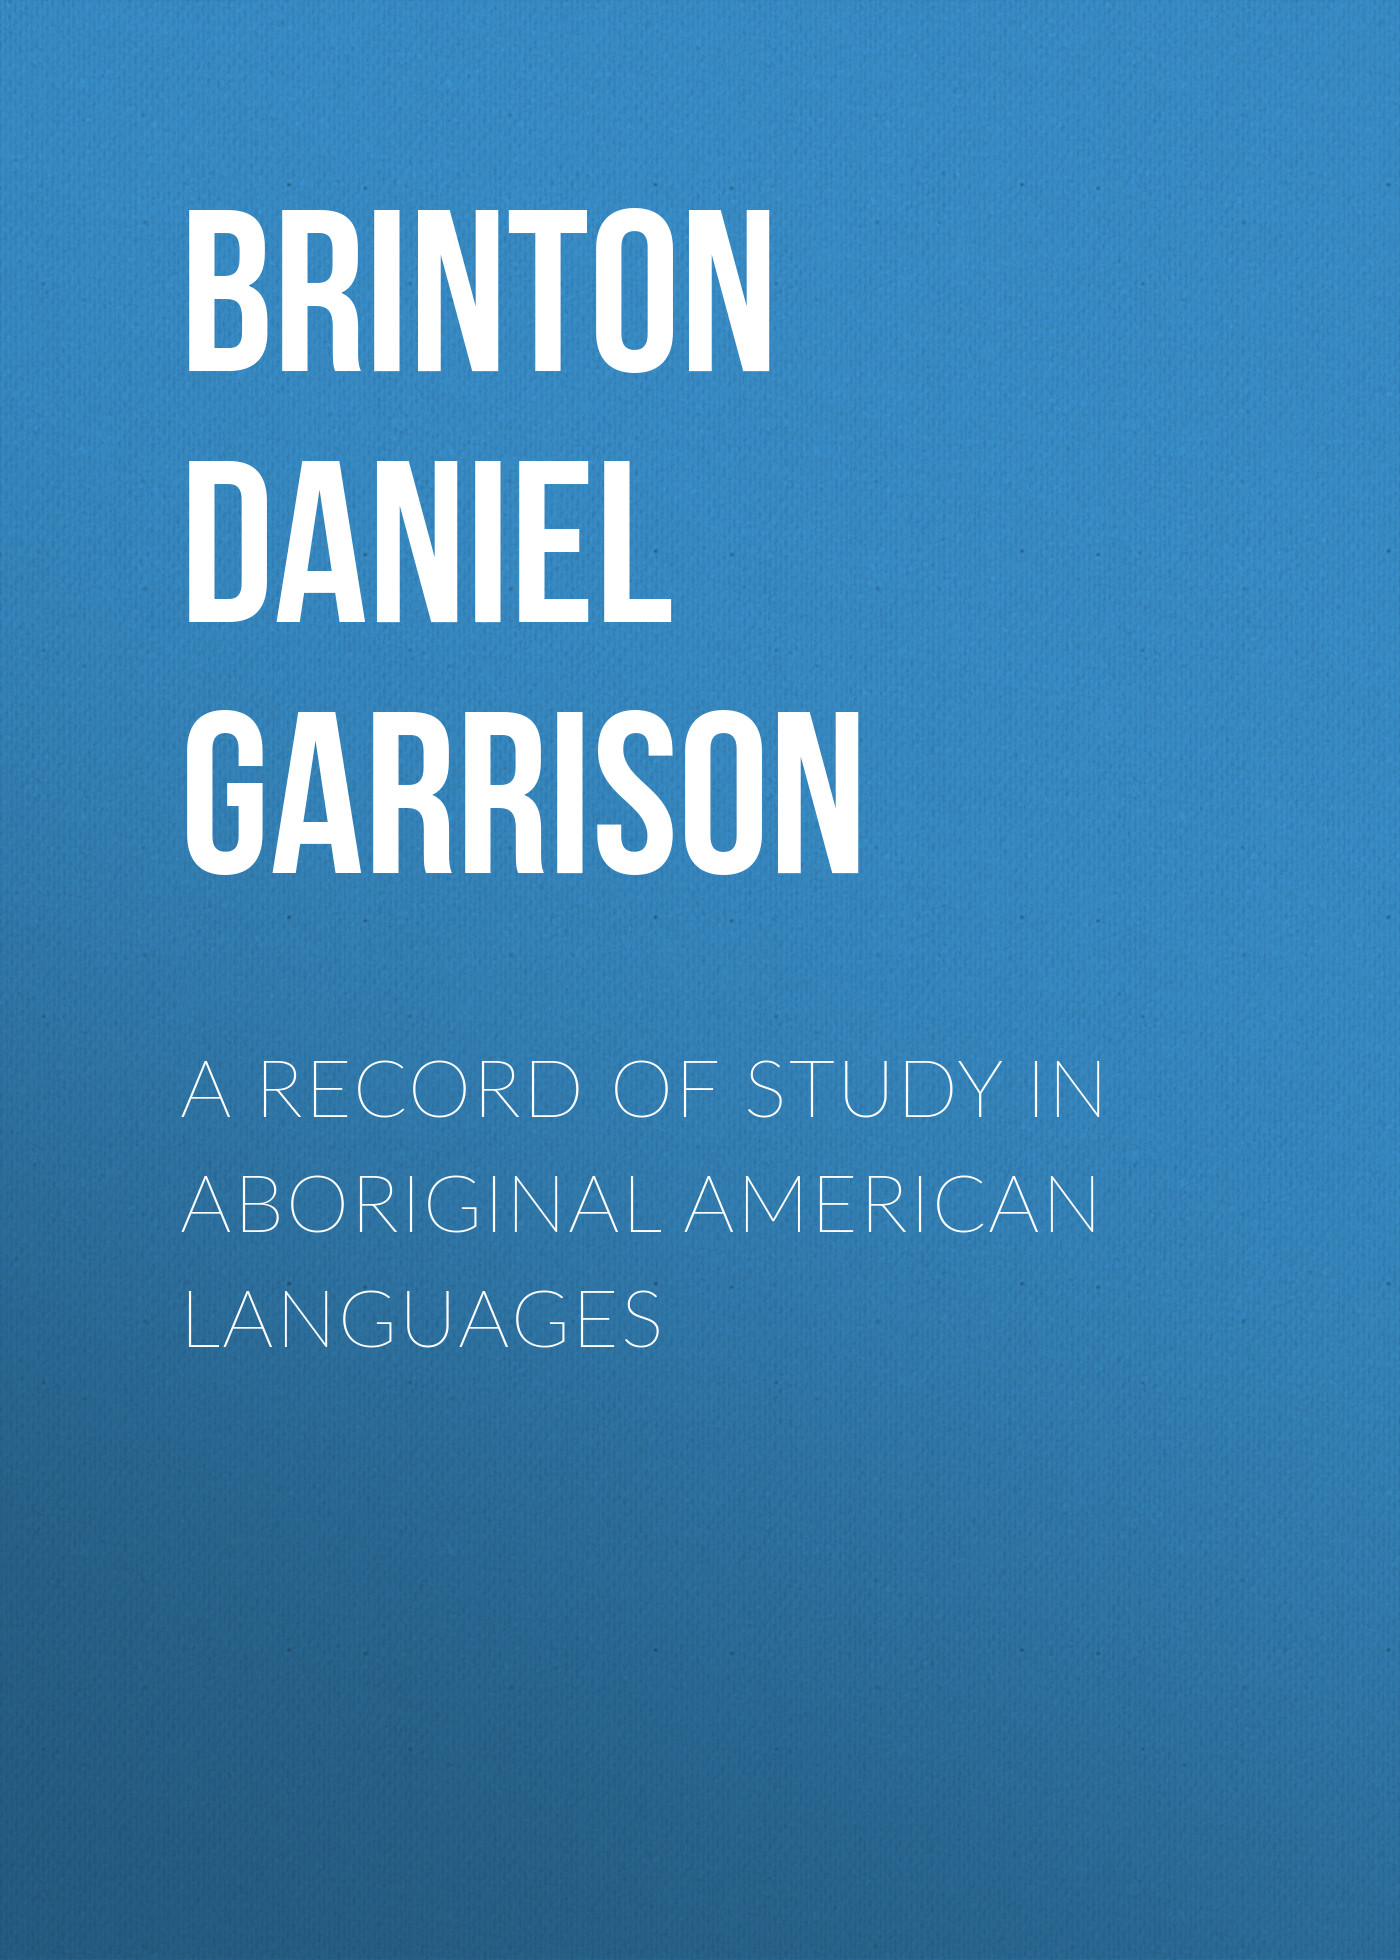 Brinton Daniel Garrison A Record of Study in Aboriginal American Languages revitalisation of indigenous languages in zimbabwe